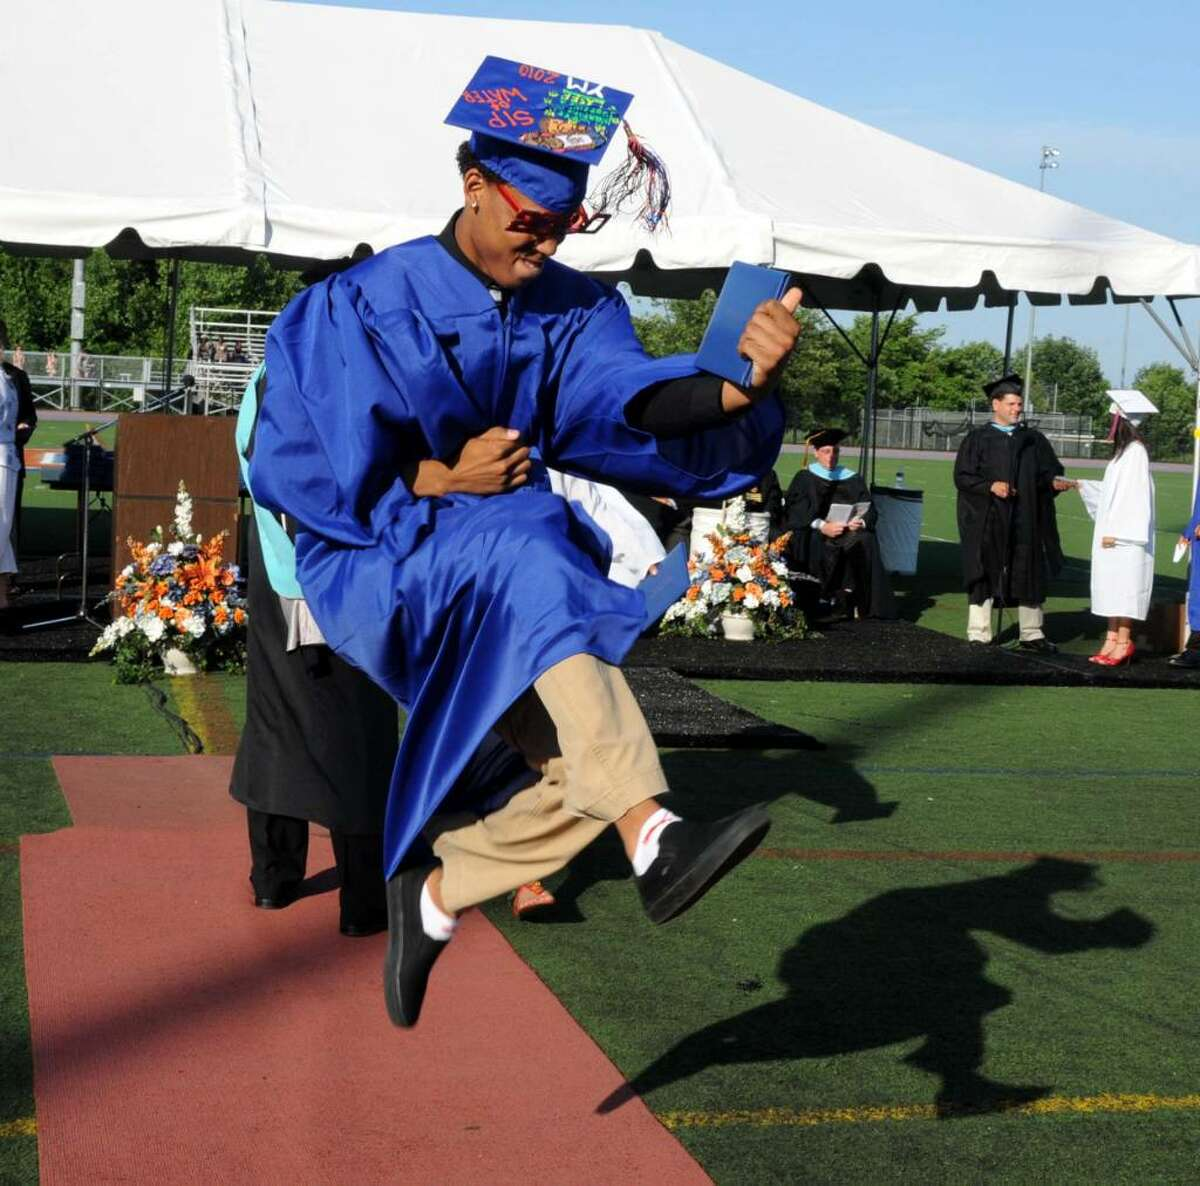 Eric Paredes, 19, jumps for joy after he receives his diploma at the Danbury High School commencement exercises on Wednesday June 23, 2010, at Danbury High School.